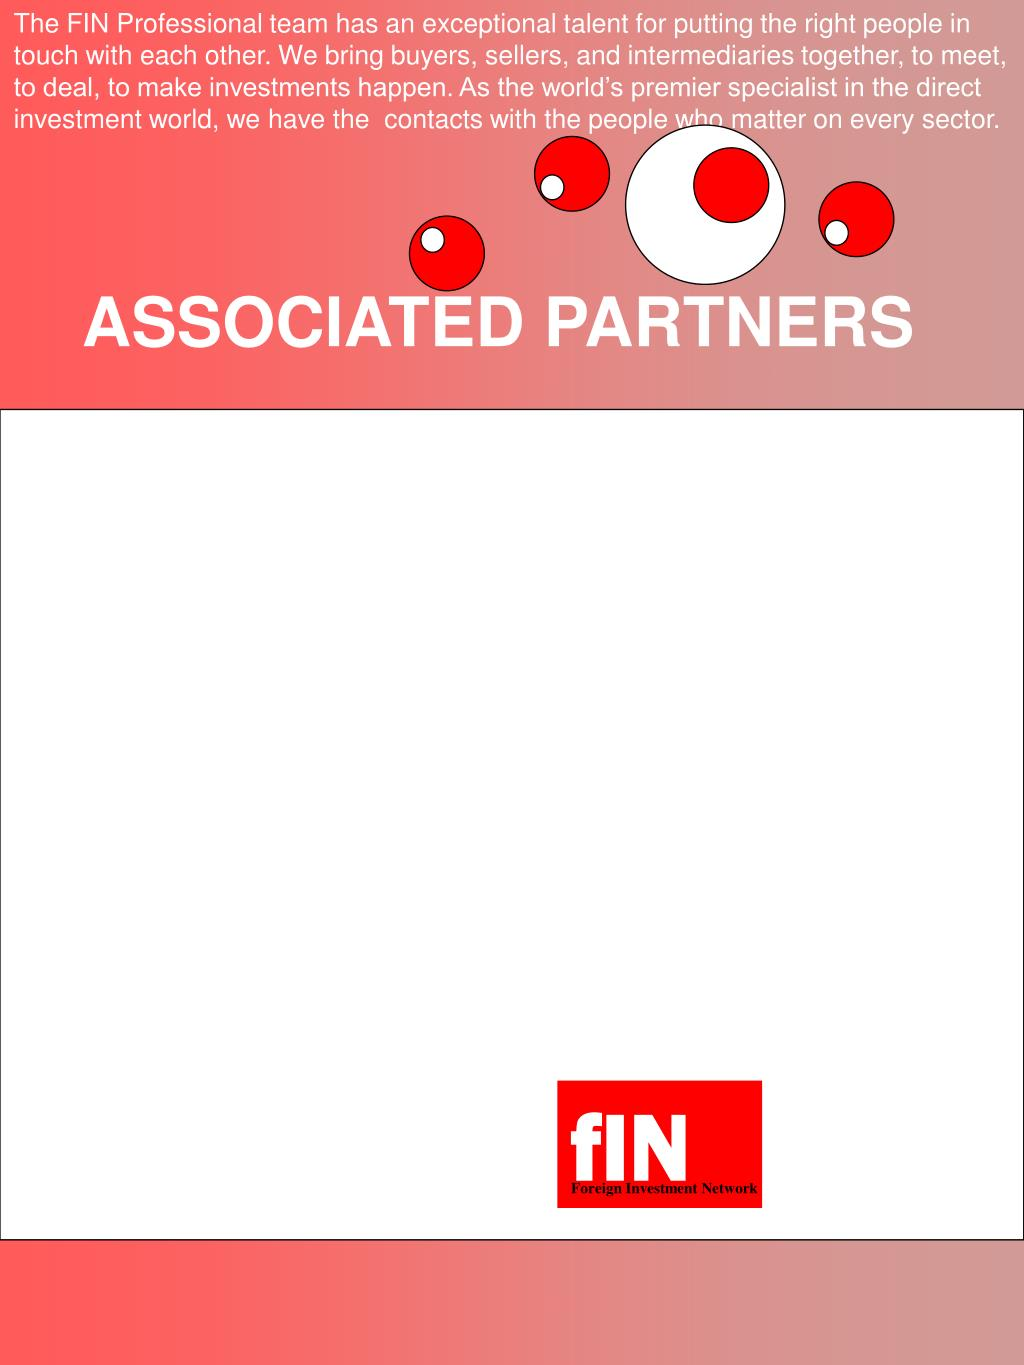 The FIN Professional team has an exceptional talent for putting the right people in touch with each other. We bring buyers, sellers, and intermediaries together, to meet, to deal, to make investments happen. As the world's premier specialist in the direct investment world, we have the  contacts with the people who matter on every sector.